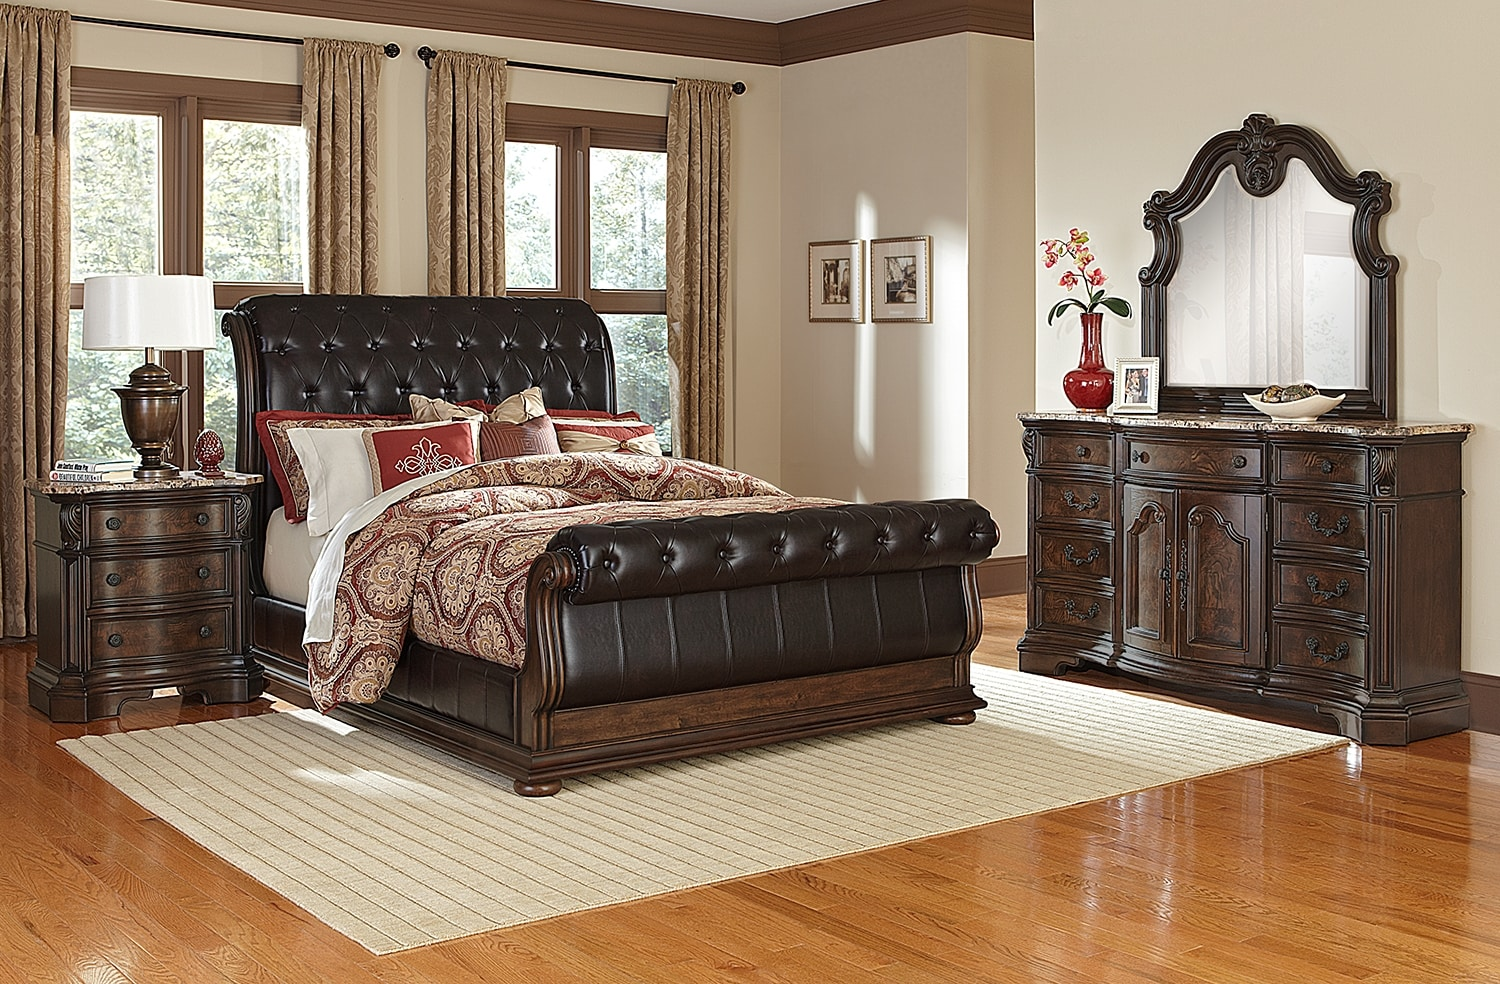 [Monticello Pecan II 6 Pc. King Bedroom]